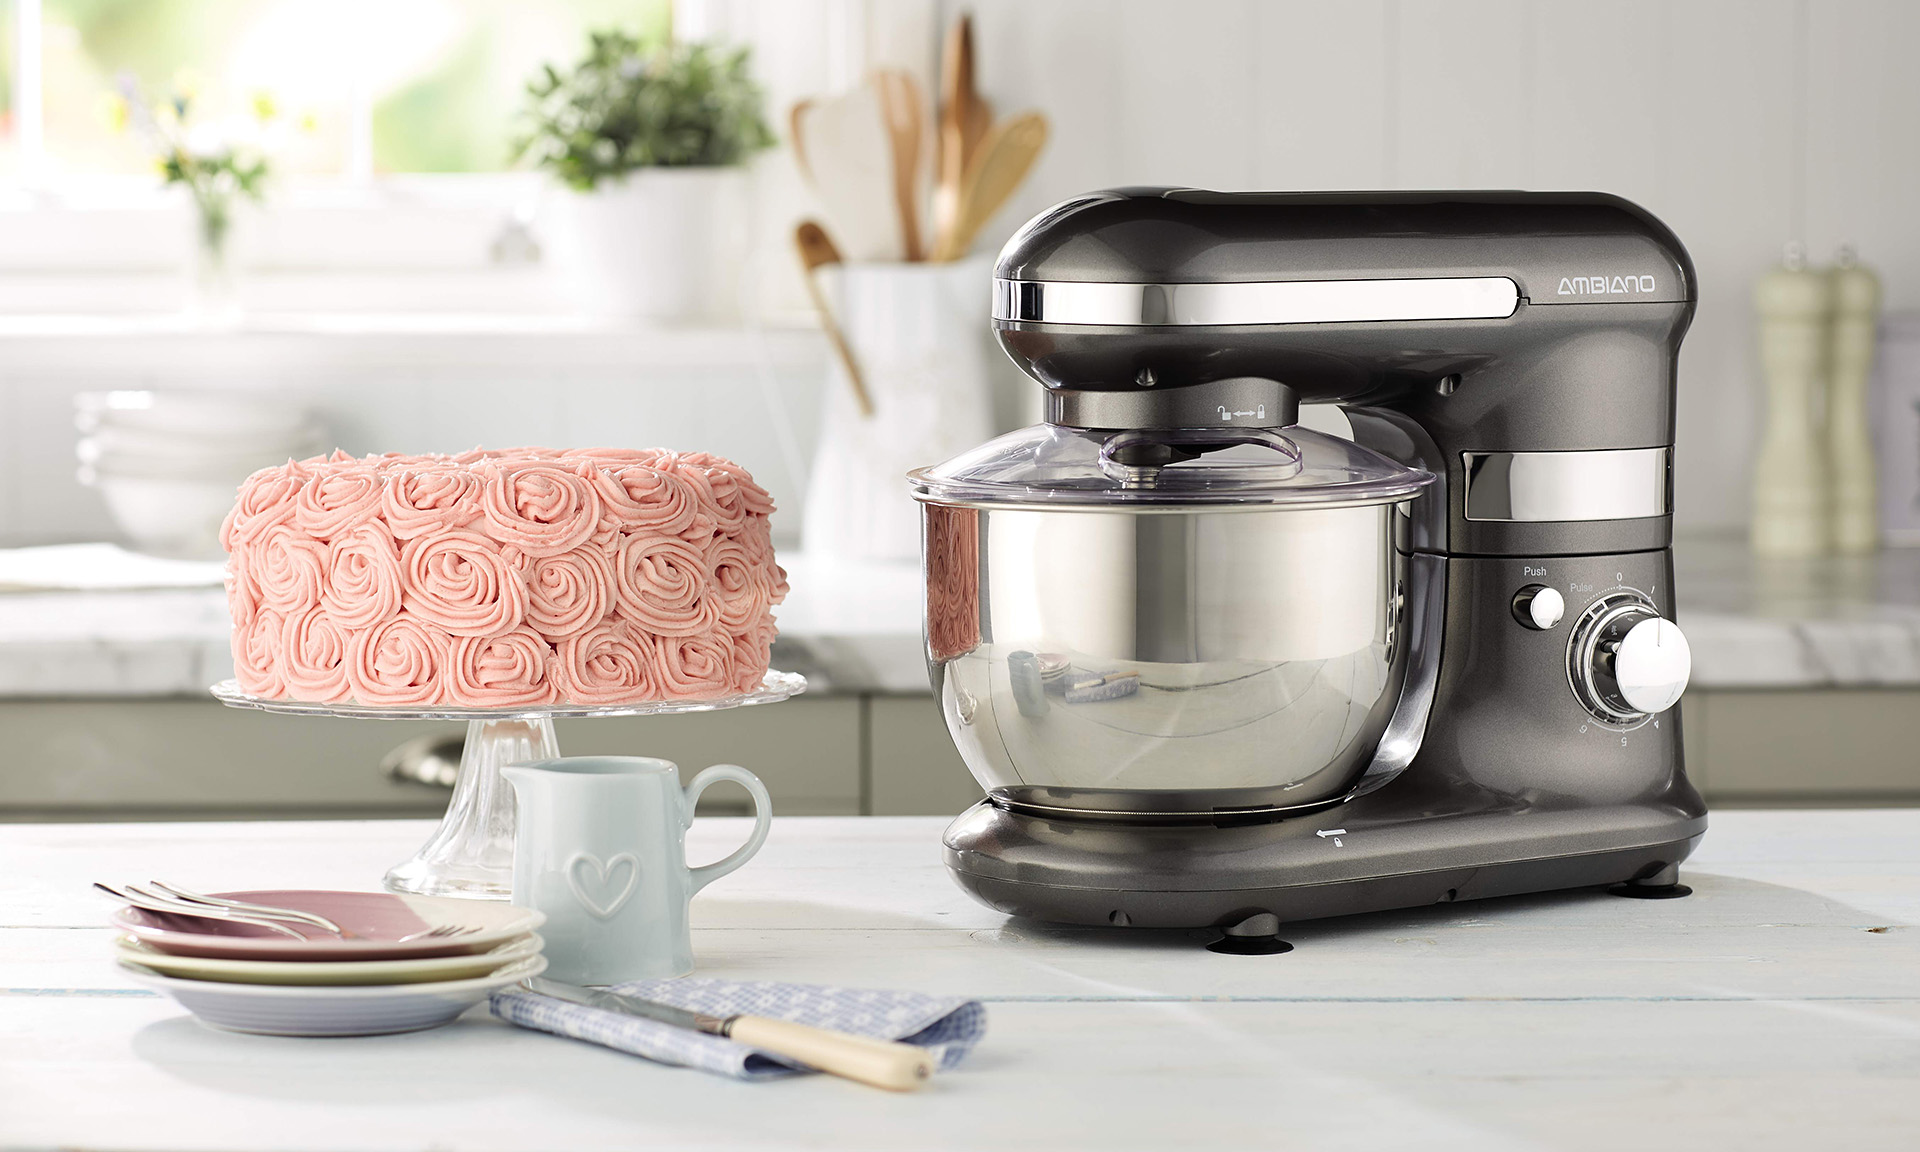 aldi launches 65 stand mixer ahead of bake off 2017. Black Bedroom Furniture Sets. Home Design Ideas